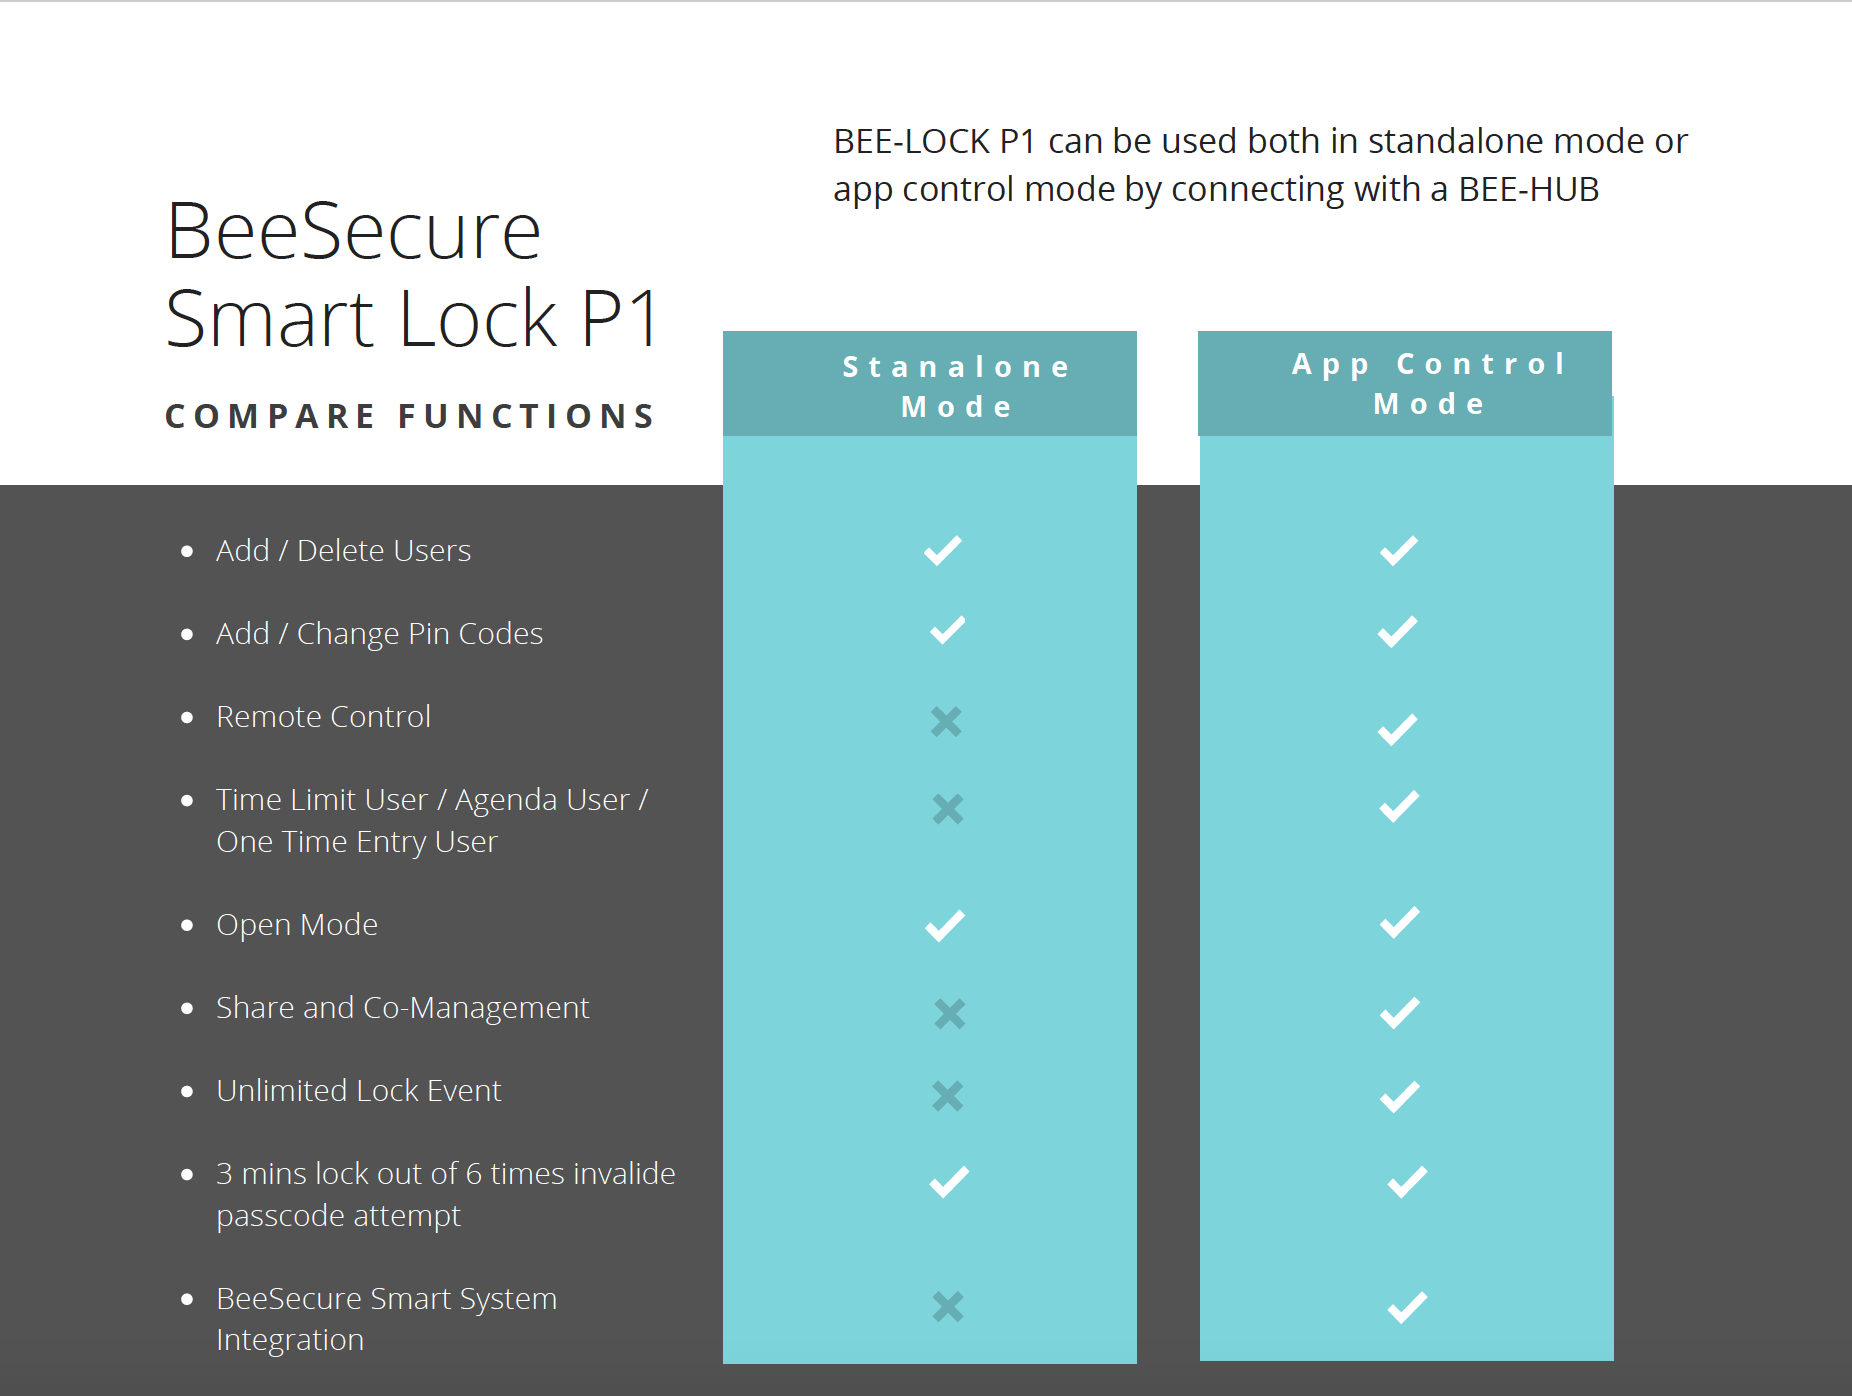 BeeSecure smart lock P1, comparison of standalone mode and App control mode